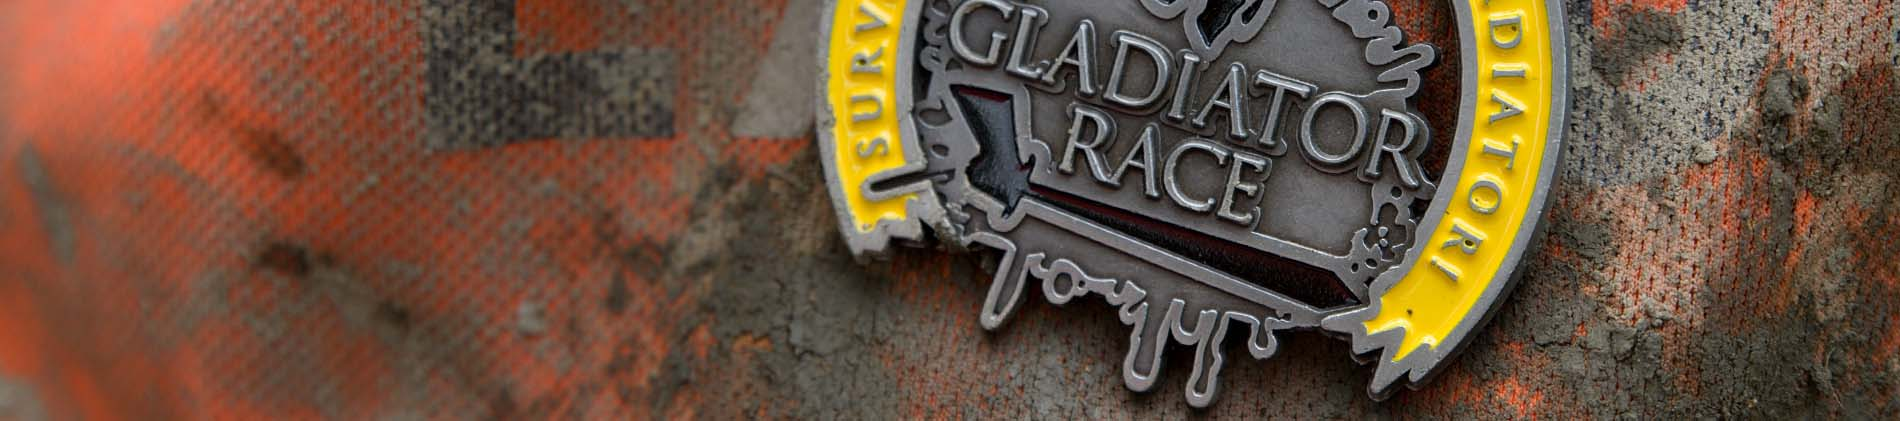 GLADIATOR RACE Holice 282 M